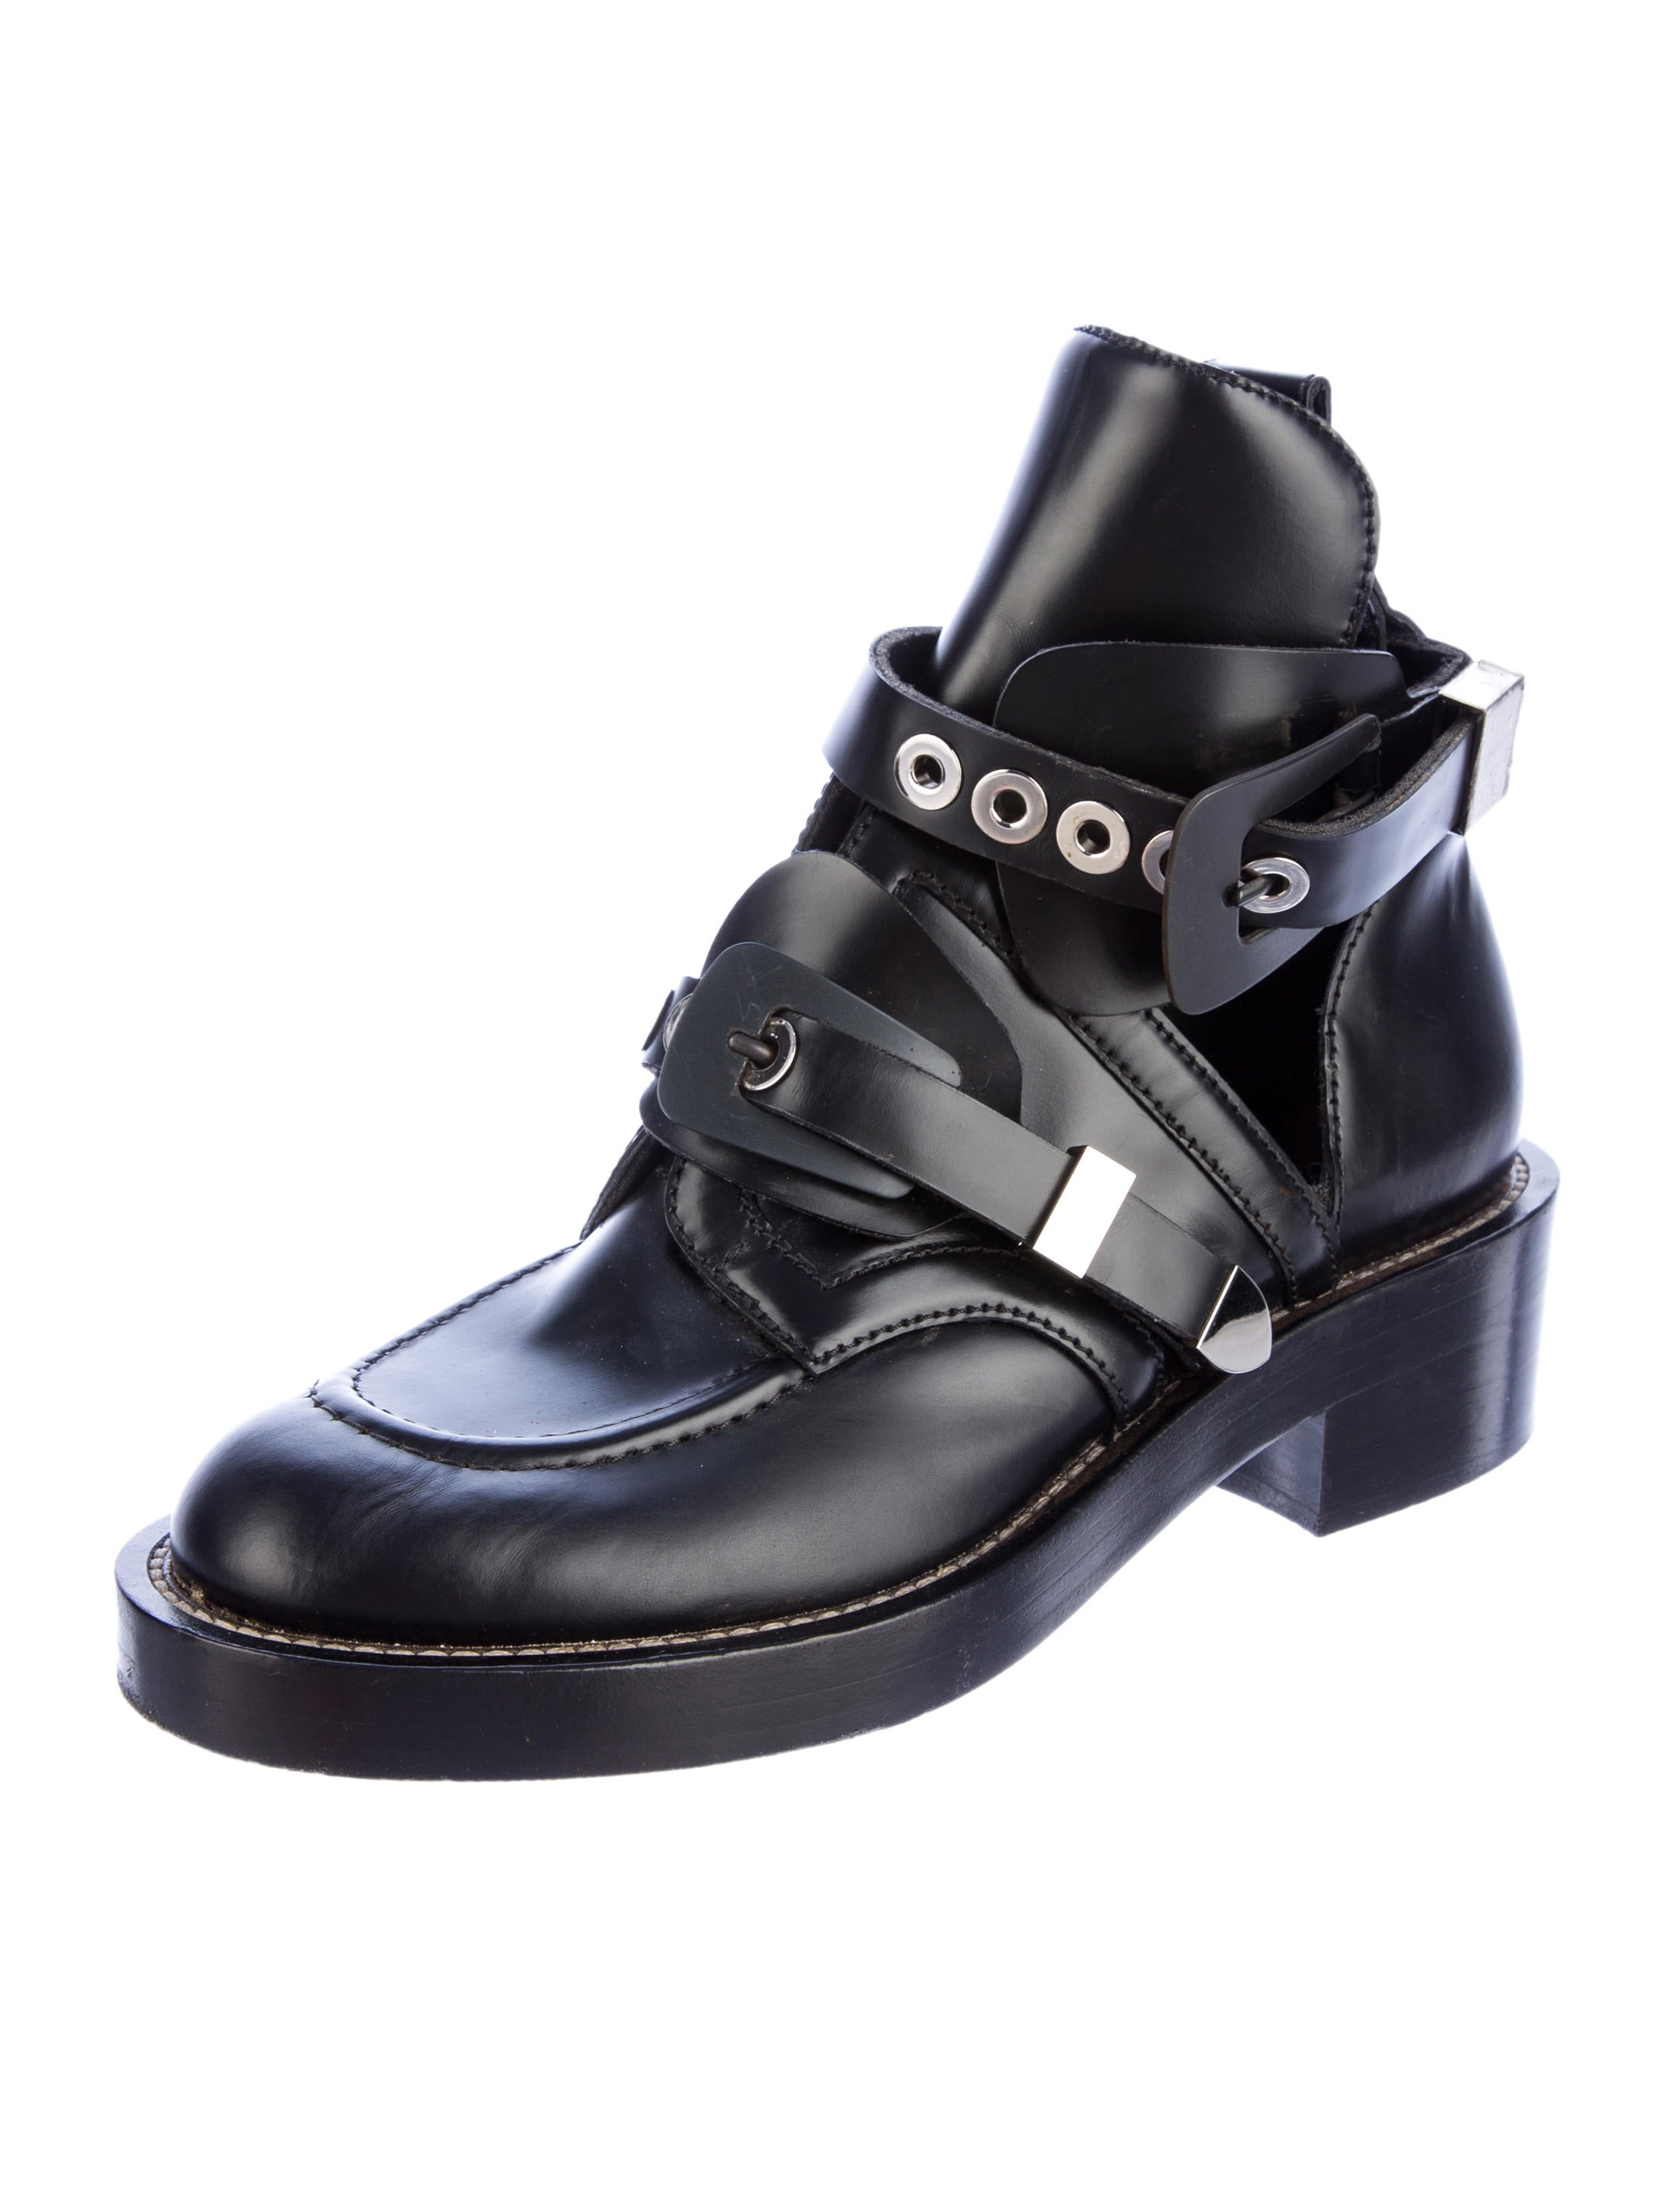 Balenciaga Ceinture Ankle Boots - Shoes - BAL26608 | The ...